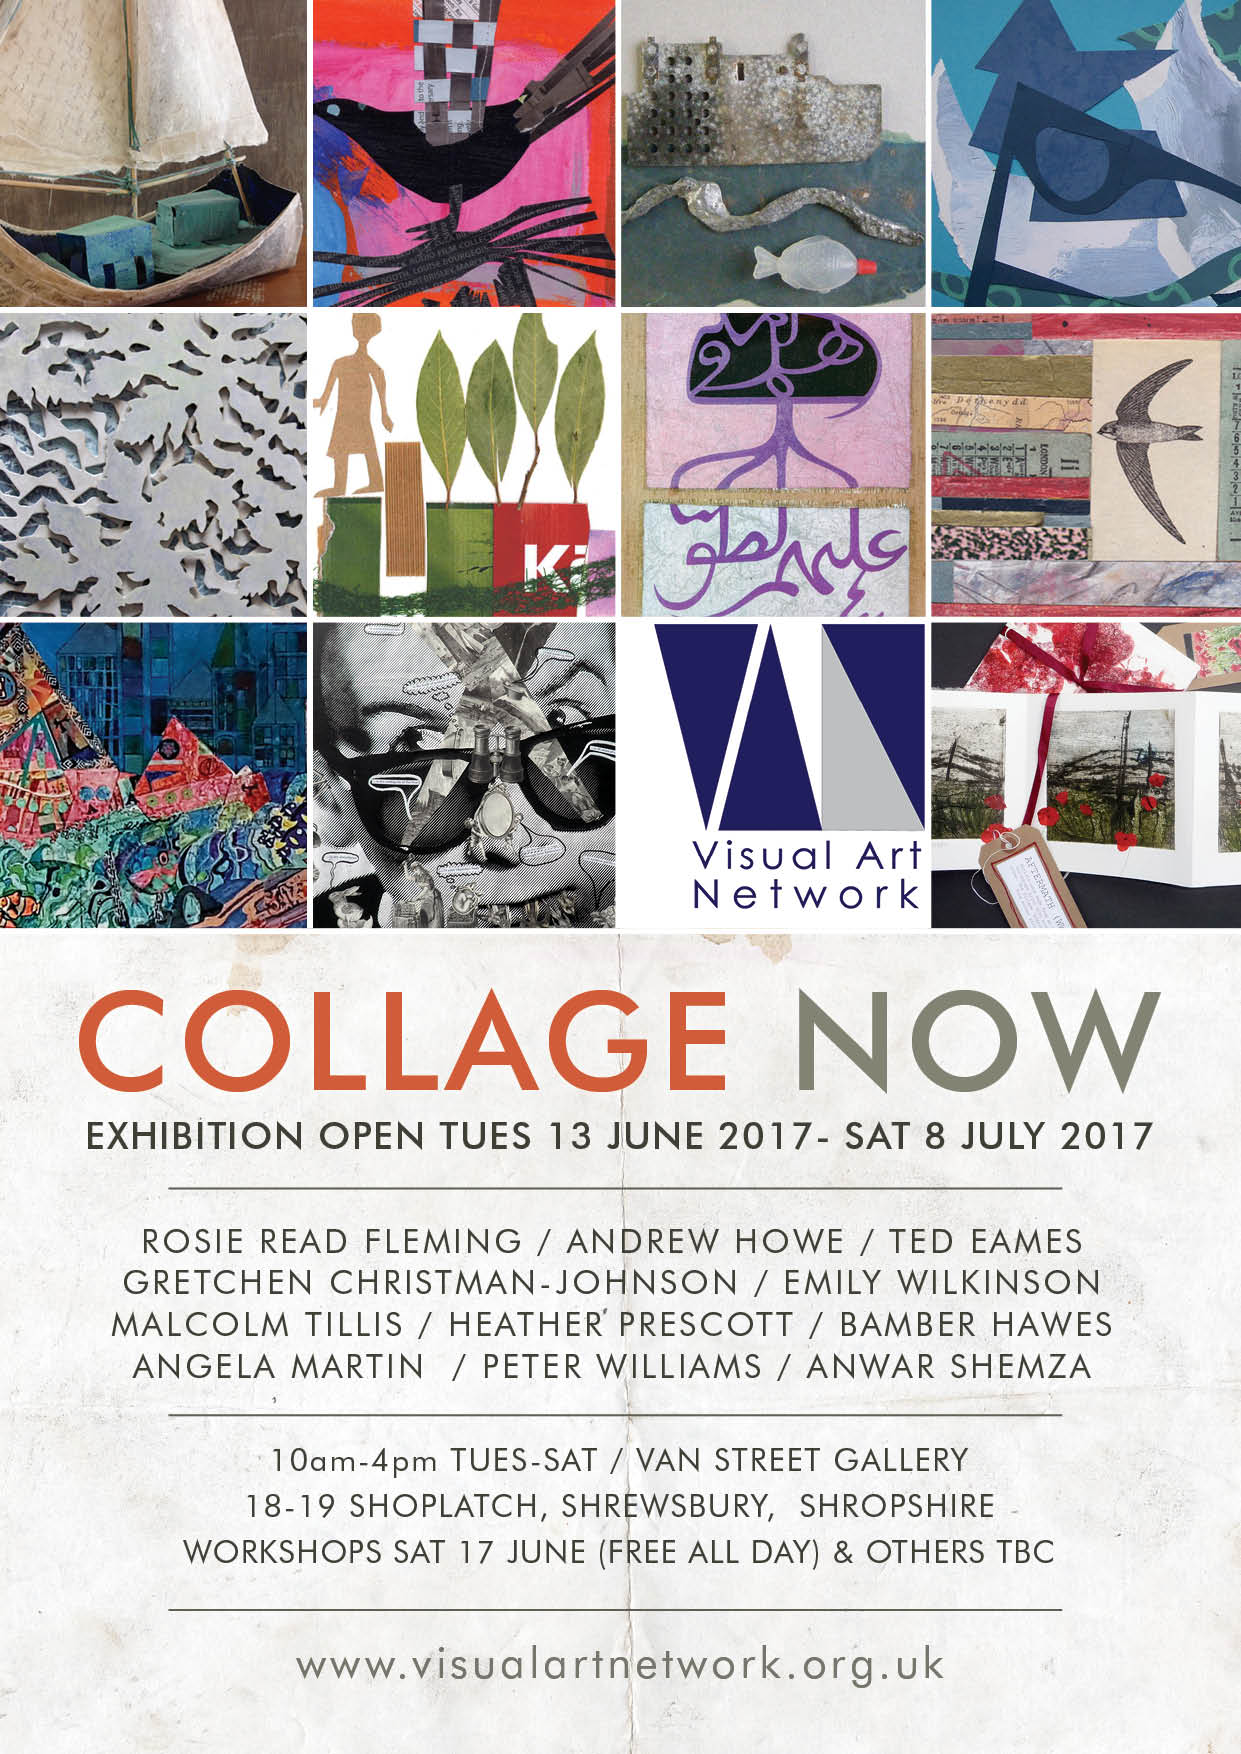 Collage Now exhibition, VAN Street Gallery, Shrewsbury